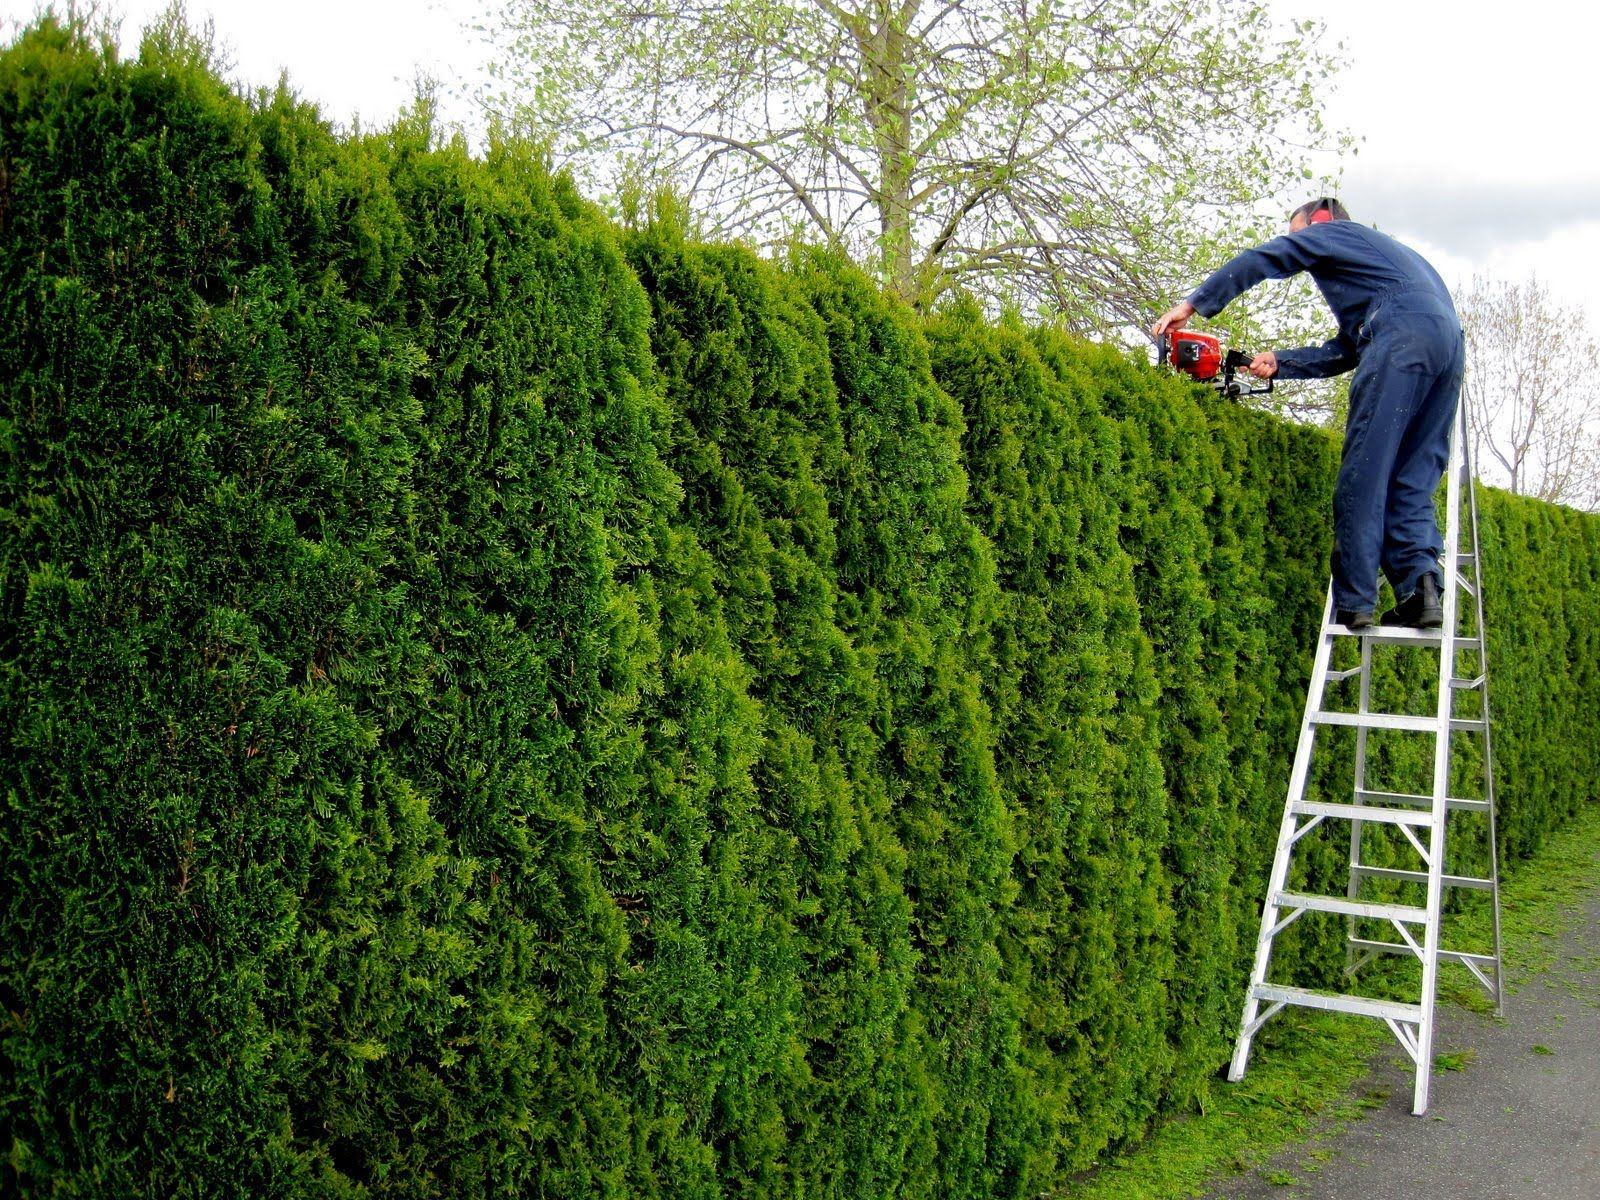 green giant arborvitae and other conifers can be sheered for a solid